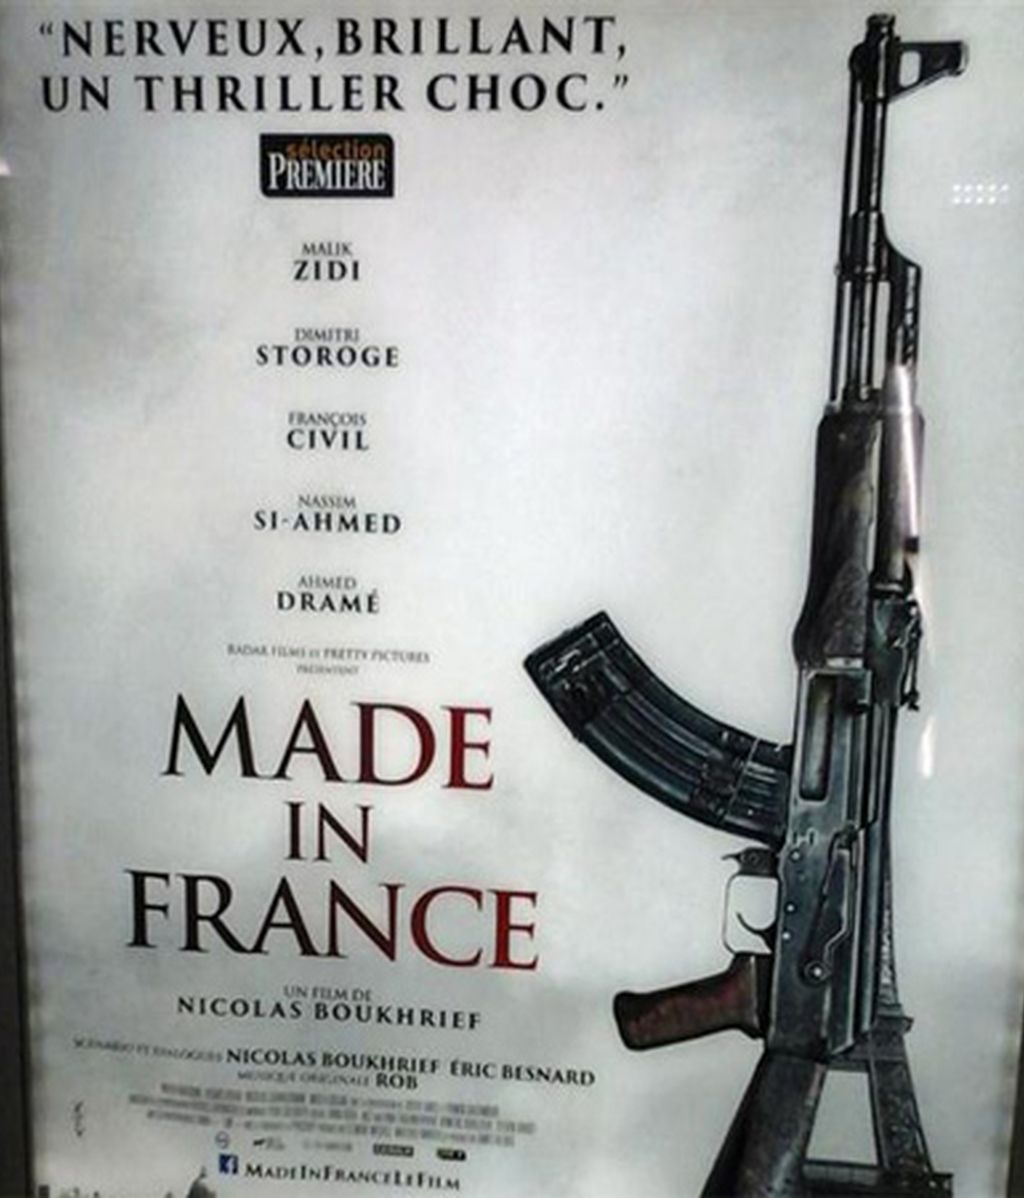 'Made in France'